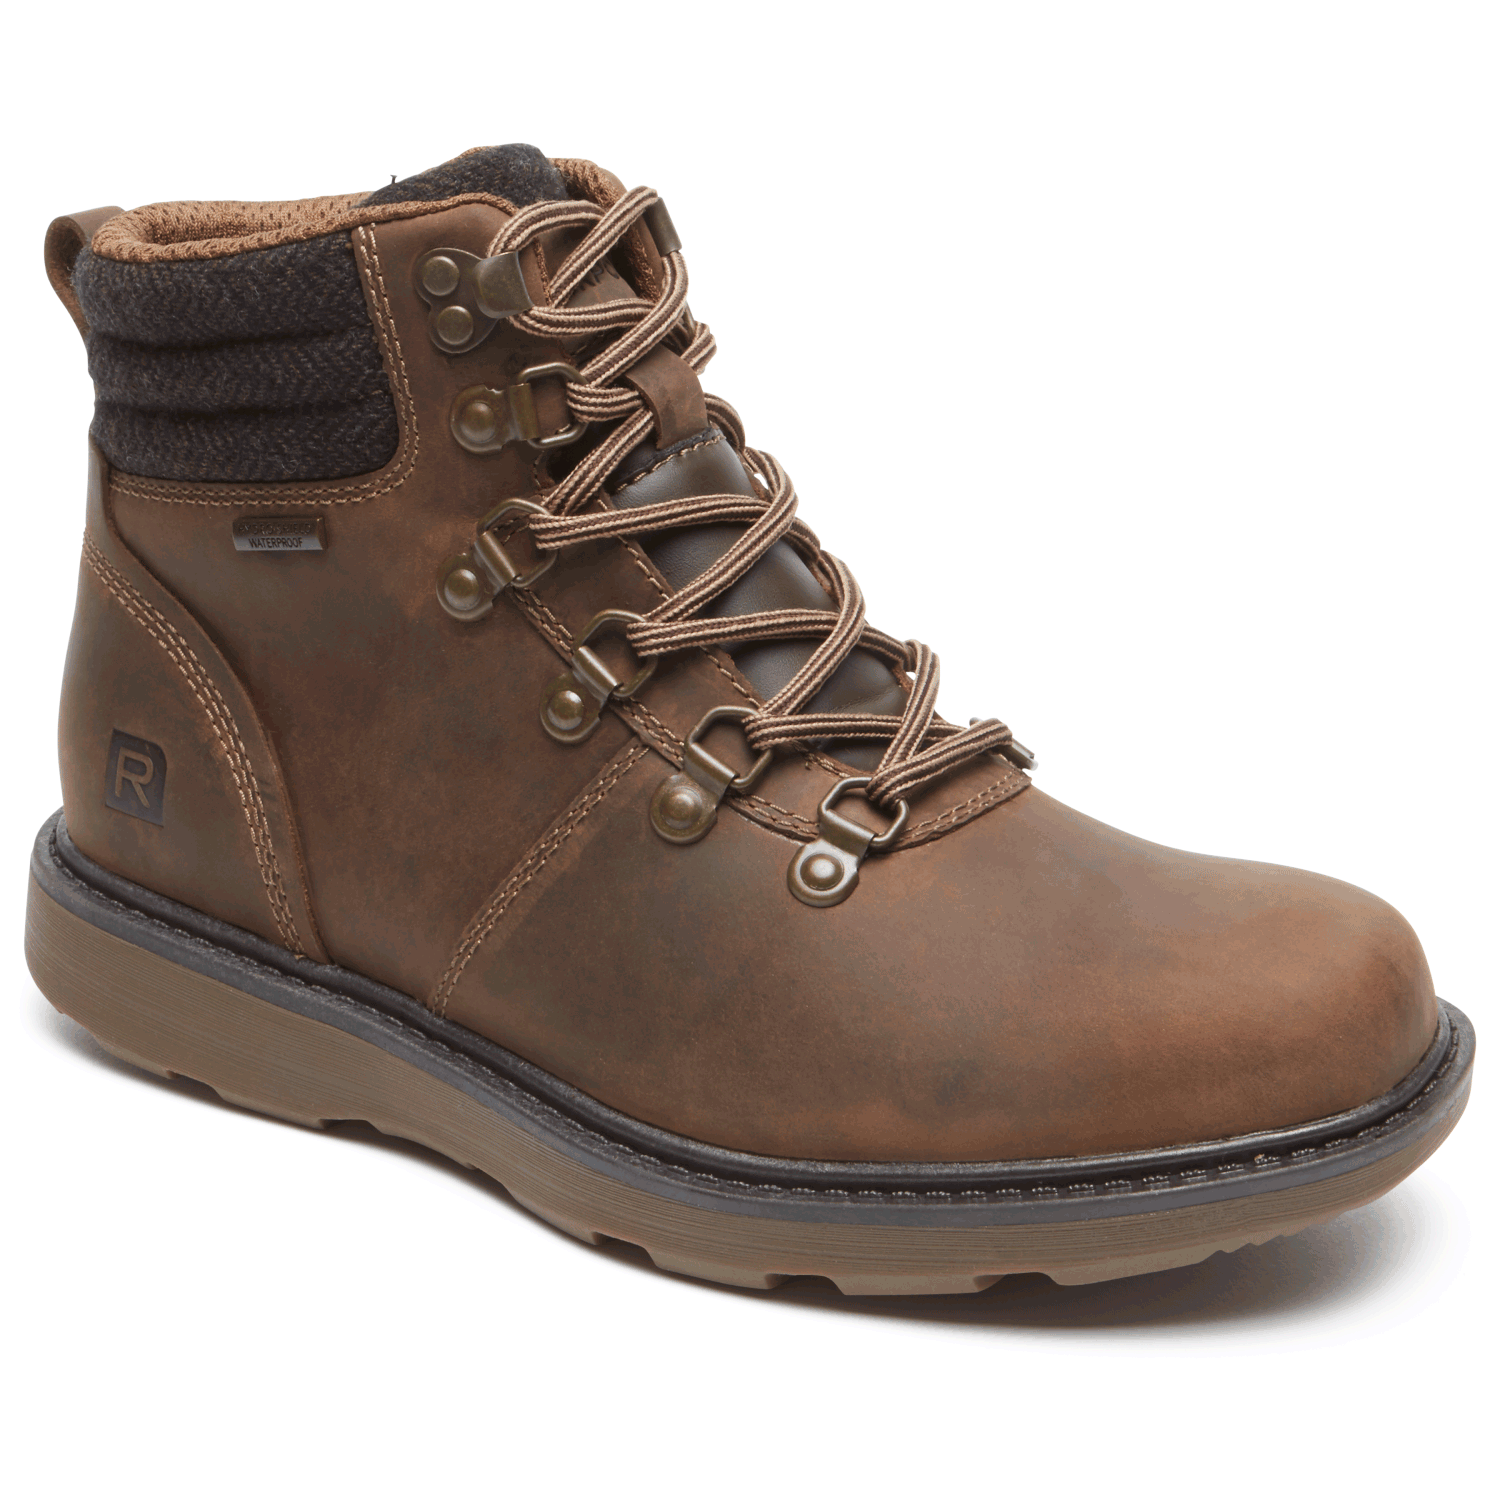 Snow boot PNG Images.